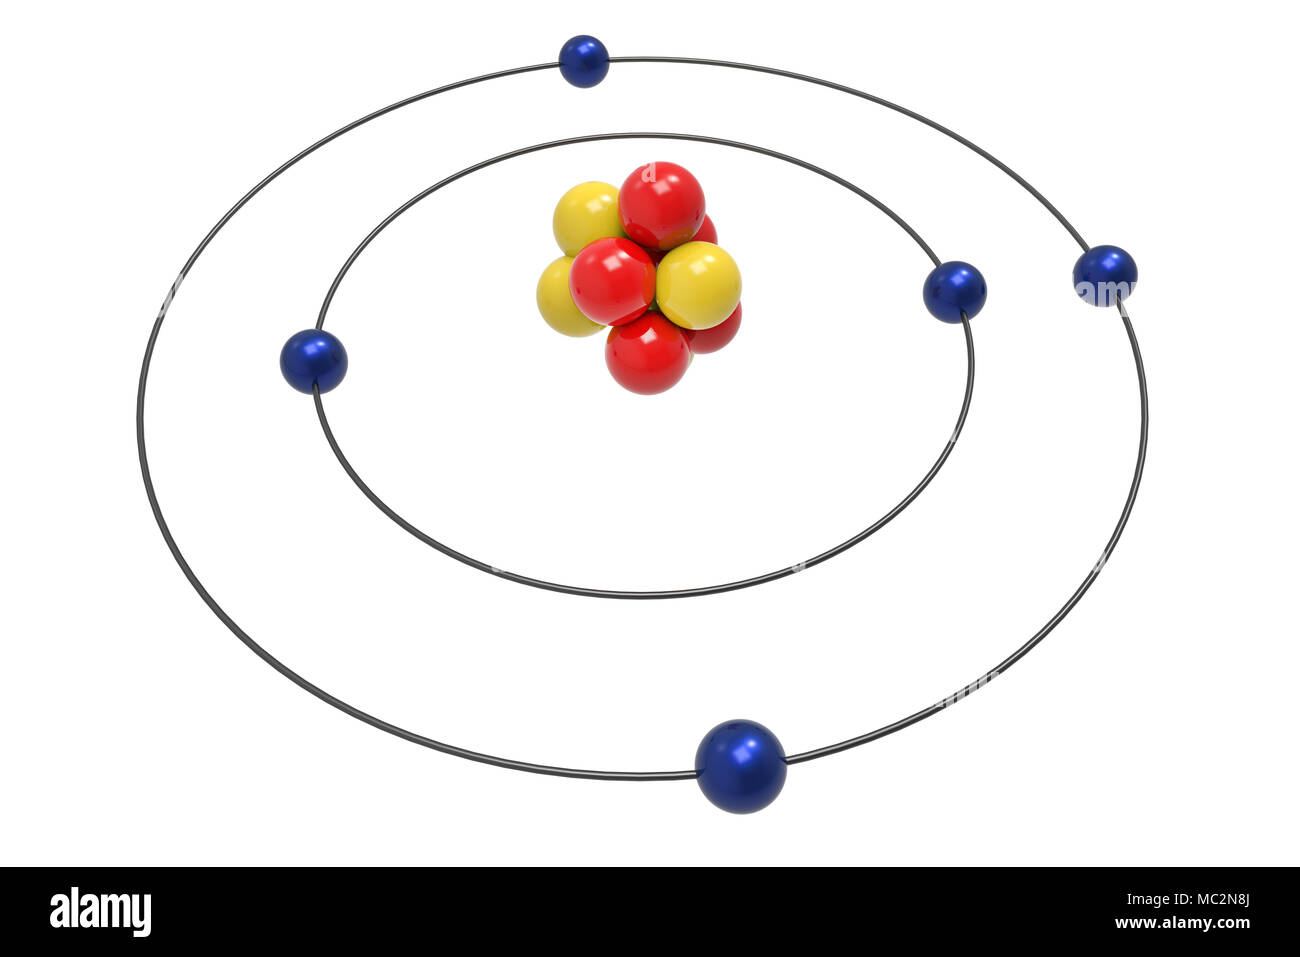 Chemical element boron stock photos chemical element boron stock bohr model of boron atom with proton neutron and electron science and chemical concept ccuart Choice Image